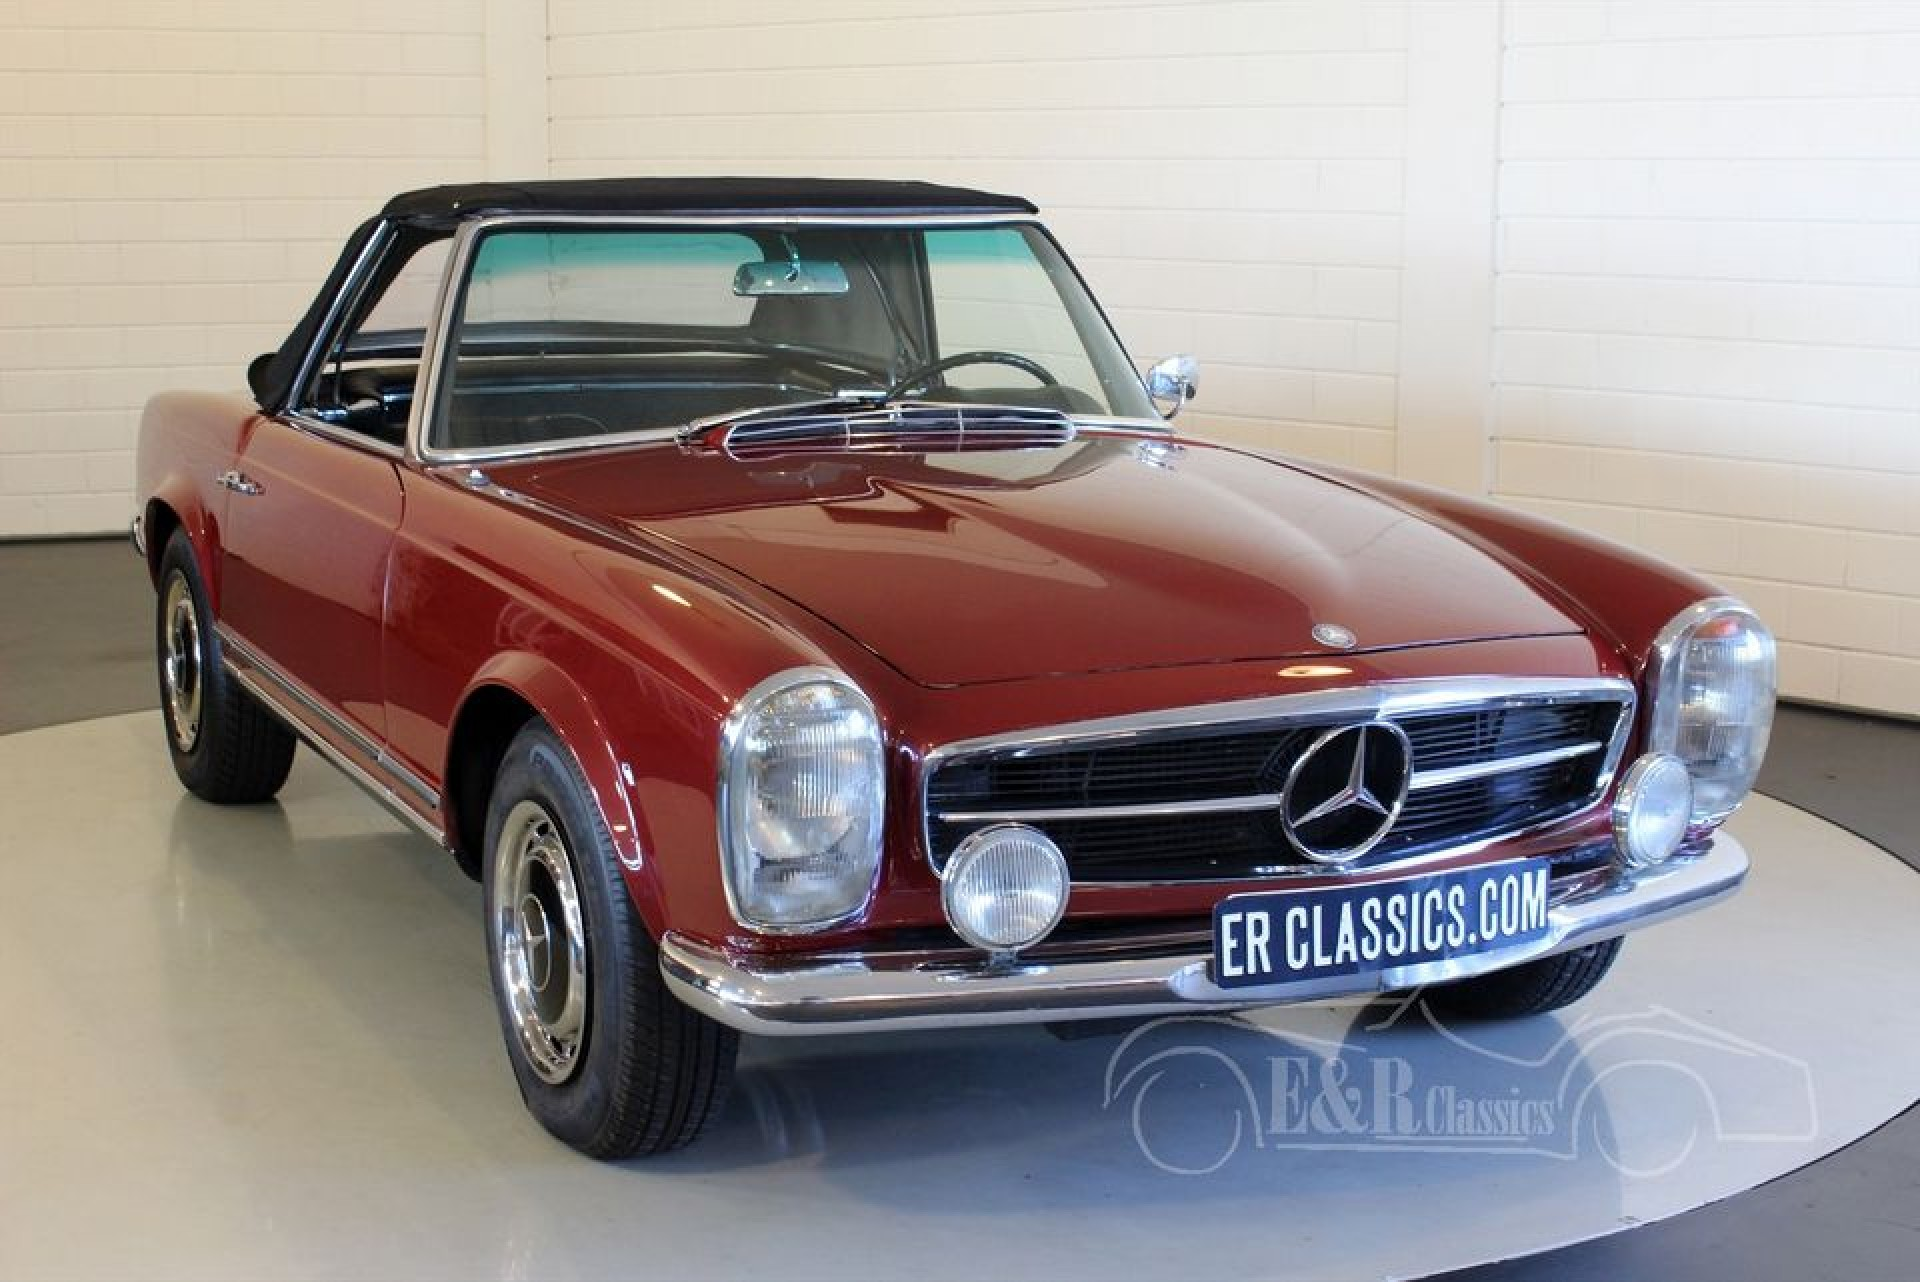 Mercedes benz 250 sl pagode 1967 for sale at erclassics for Mercedes benz sl550 for sale